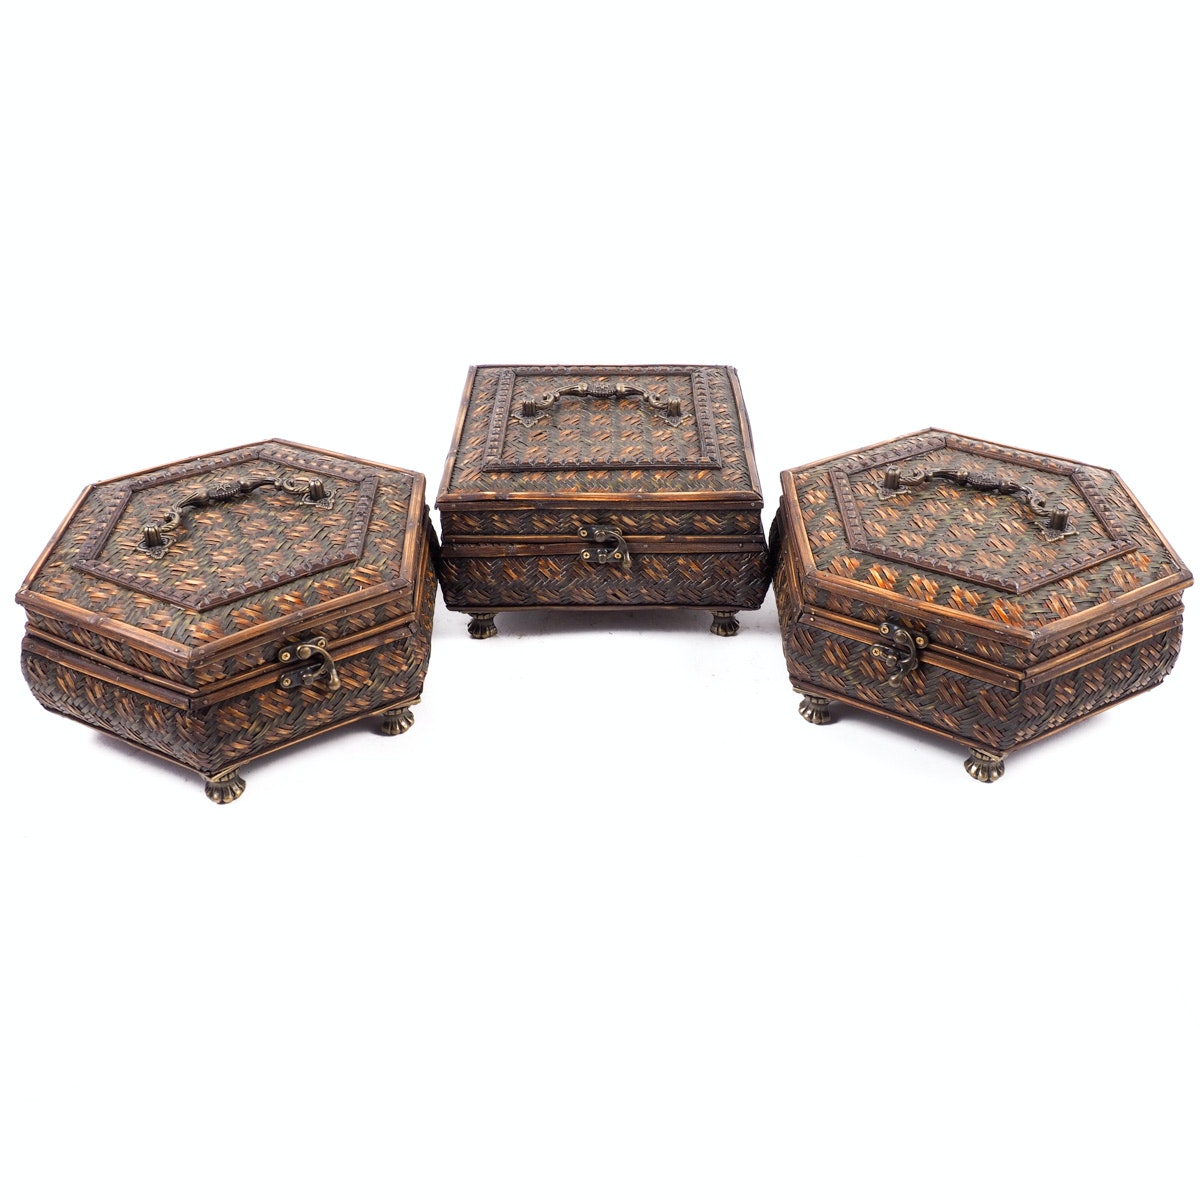 Set of Three Chinese Woven Wicker Trinket Boxes